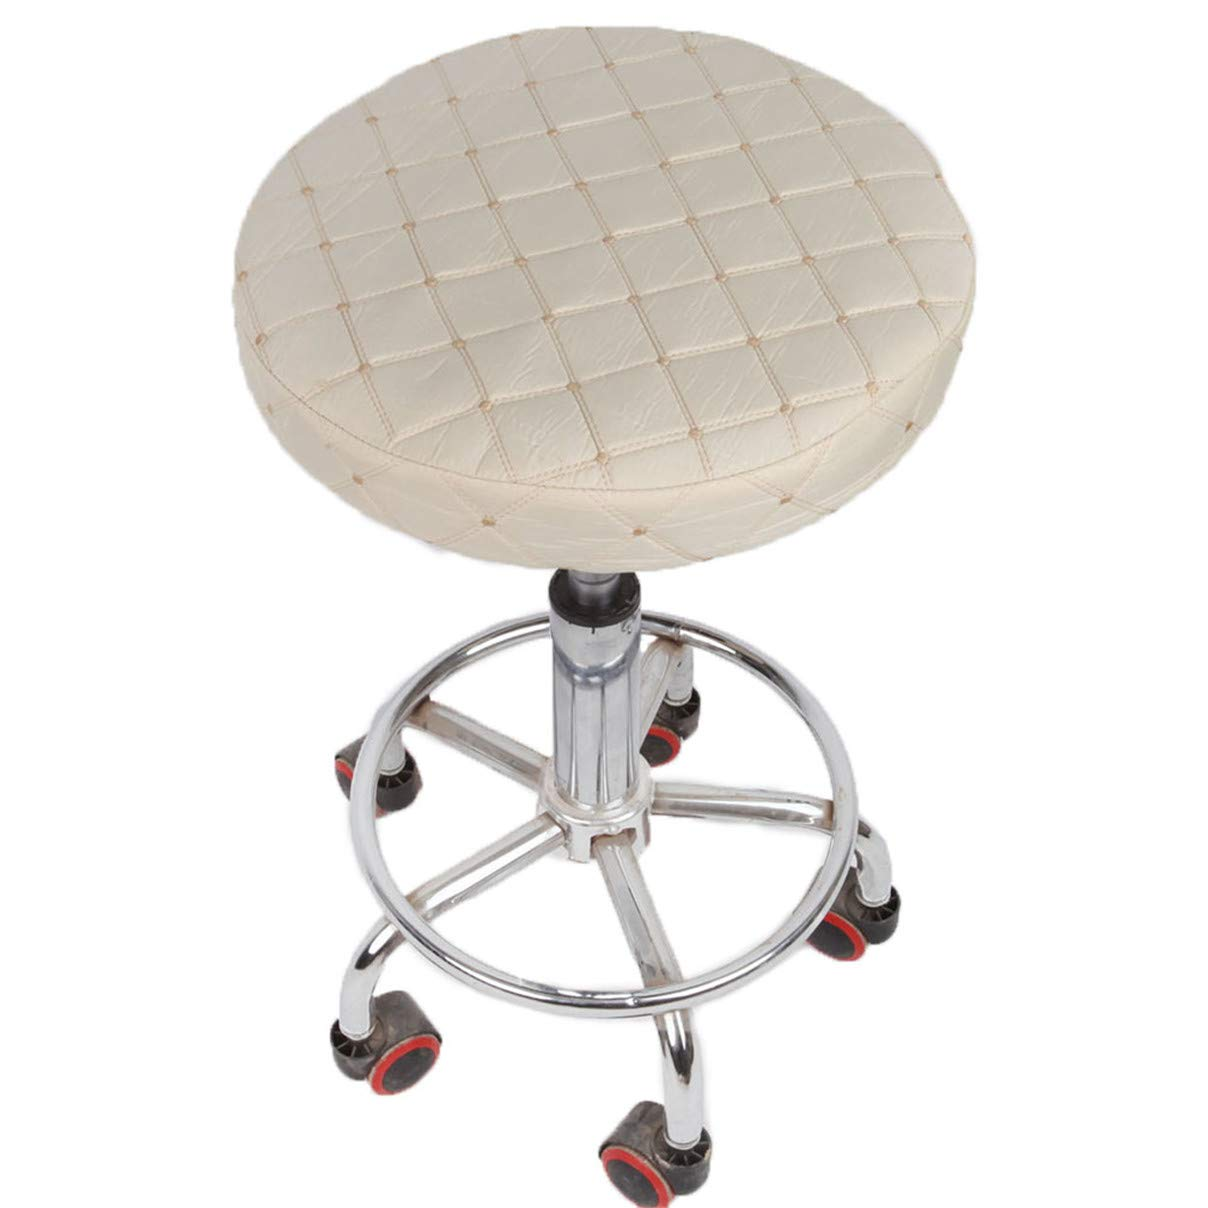 Essencedelight Stool Cover Seat Cushion Round Padded Bar Stool Thick Cover Comfortable to Relieve Pressure Chairs Covers